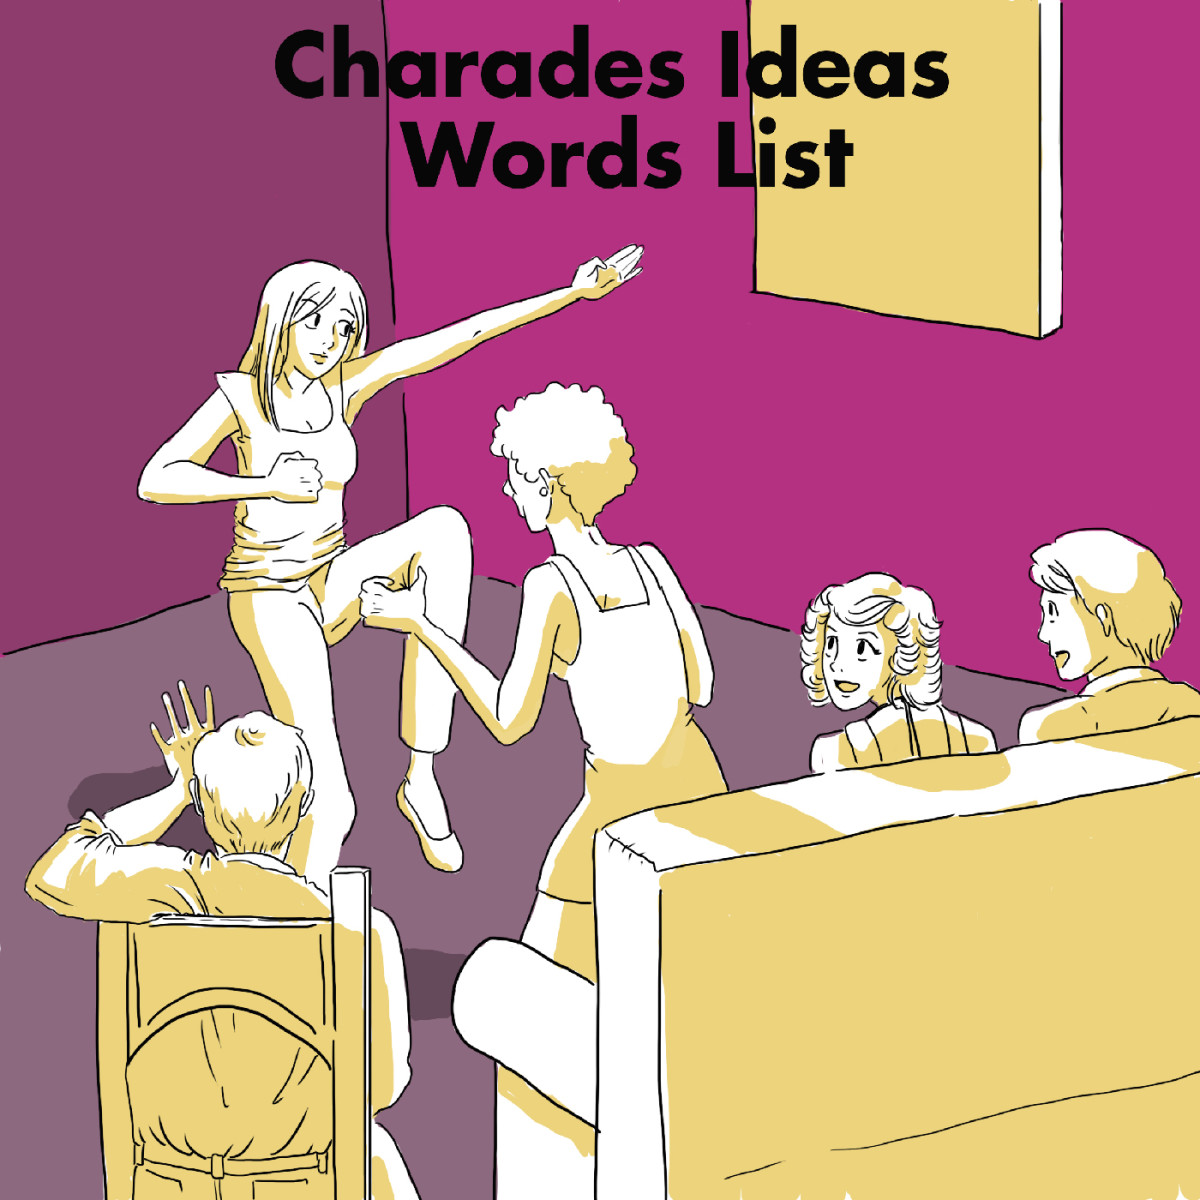 Charades Ideas Words List